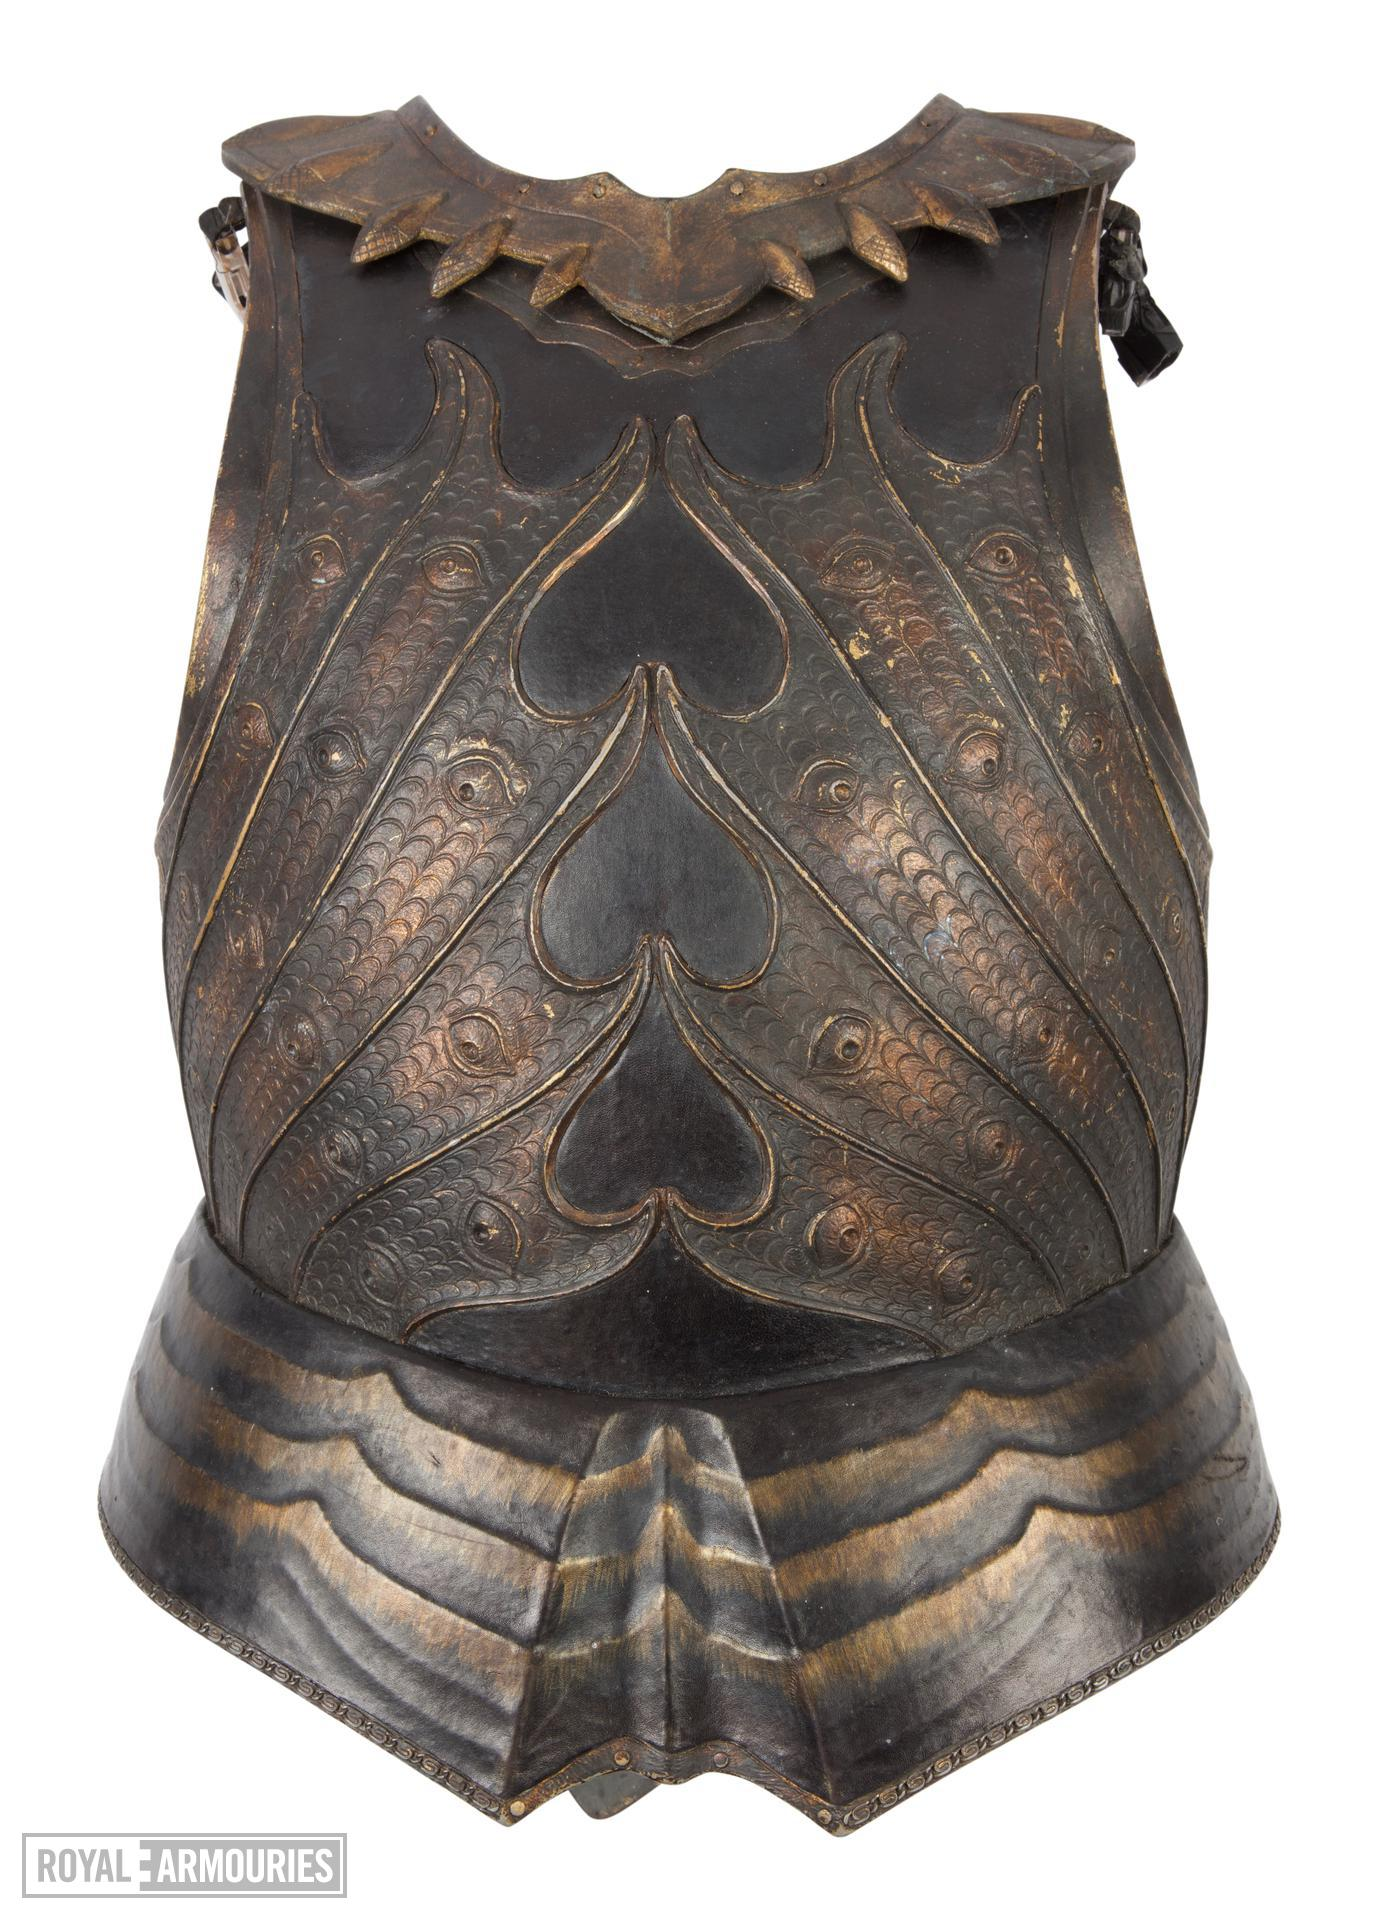 Breastplate, Backplate and Gorget - Breastplate, backplate and gorget from The Lord Marshal's Costume